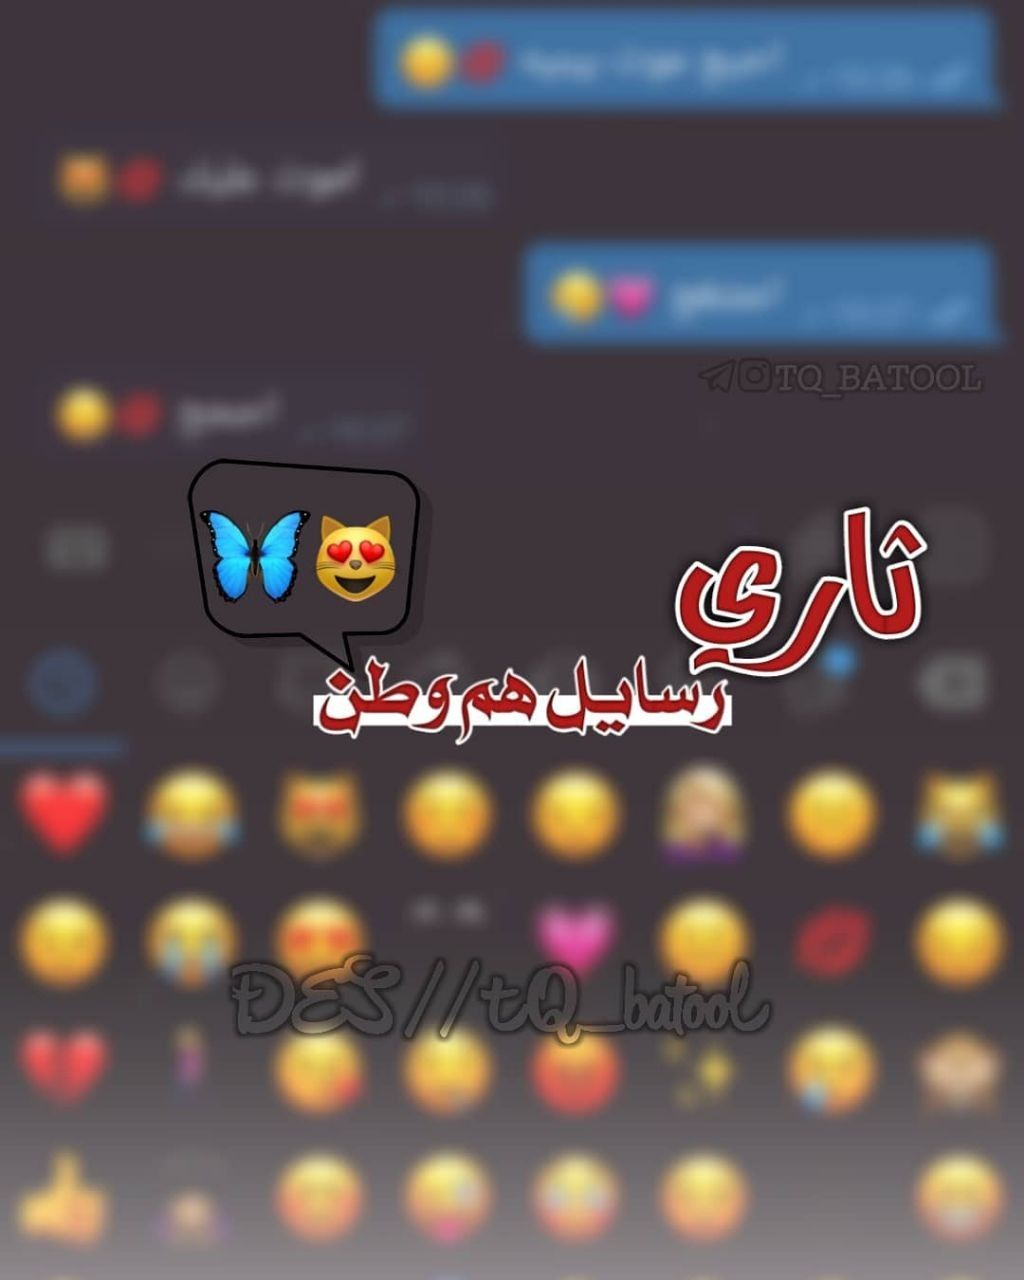 حـ سس اﺎب ـ ۑ انستا Tot8s ֆ ء Photo Ideas Girl Instagram Profile Picture Ideas Cute Girl Face